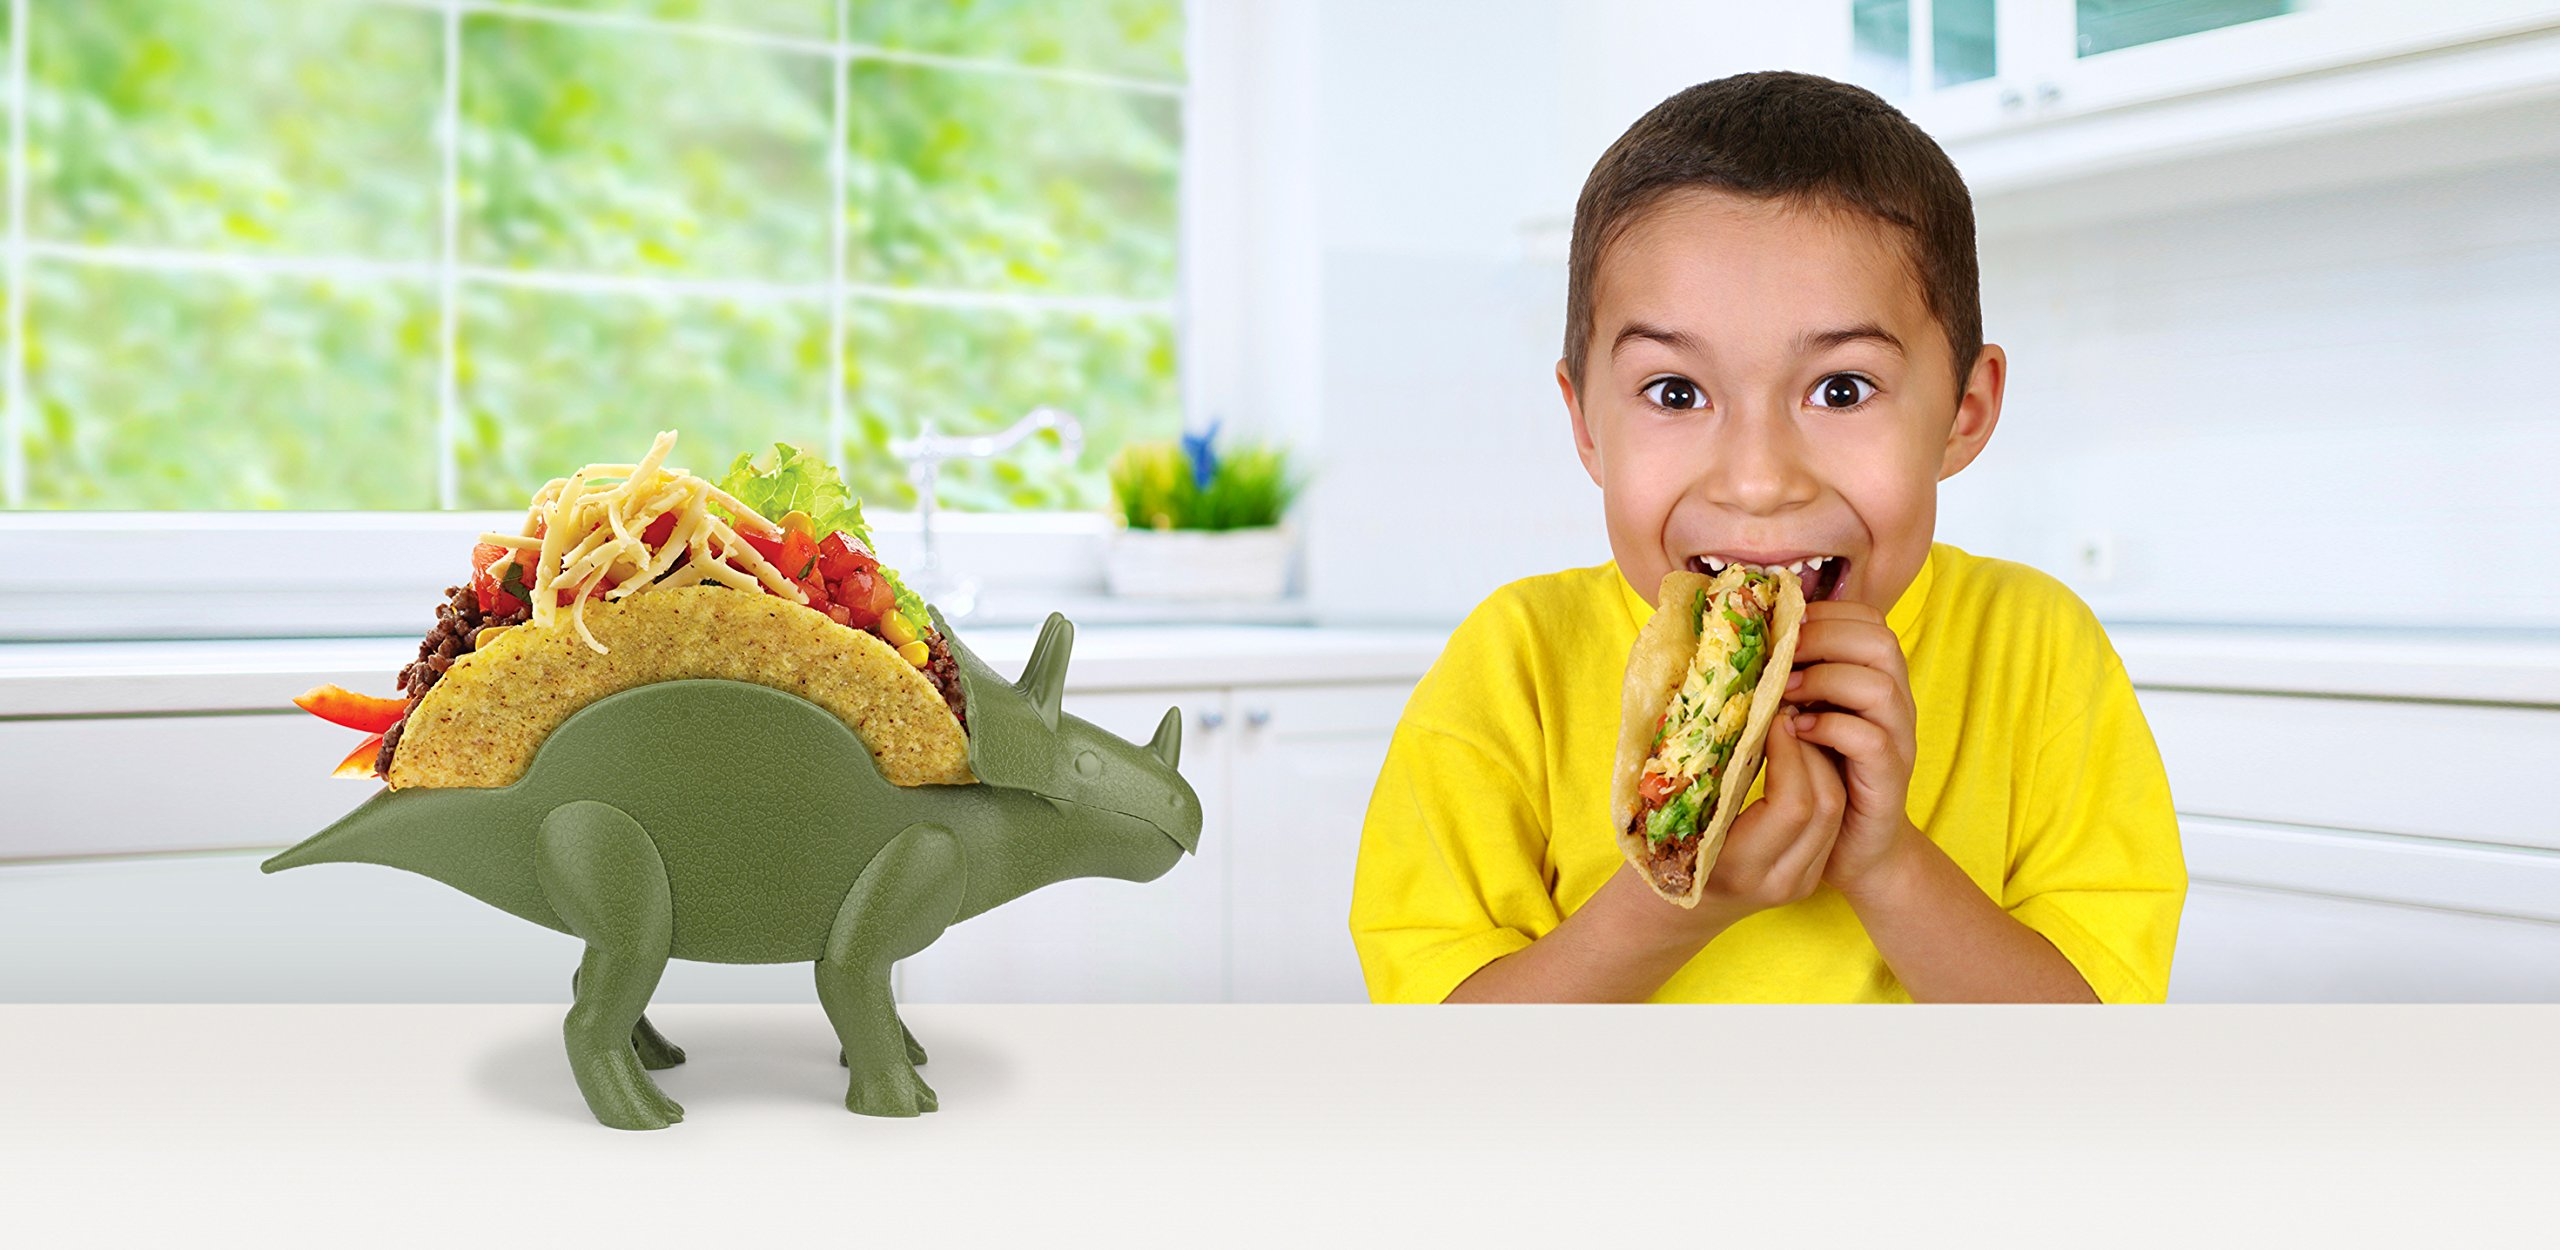 KidsFunwares TriceraTACO Taco Holder - The Ultimate Prehistoric Taco Stand for Jurassic Taco Tuesdays and Dinosaur Parties - Holds 2 Tacos - The Perfect Gift for Kids and Kidults that Love Dinosaurs by KidsFunwares (Image #7)